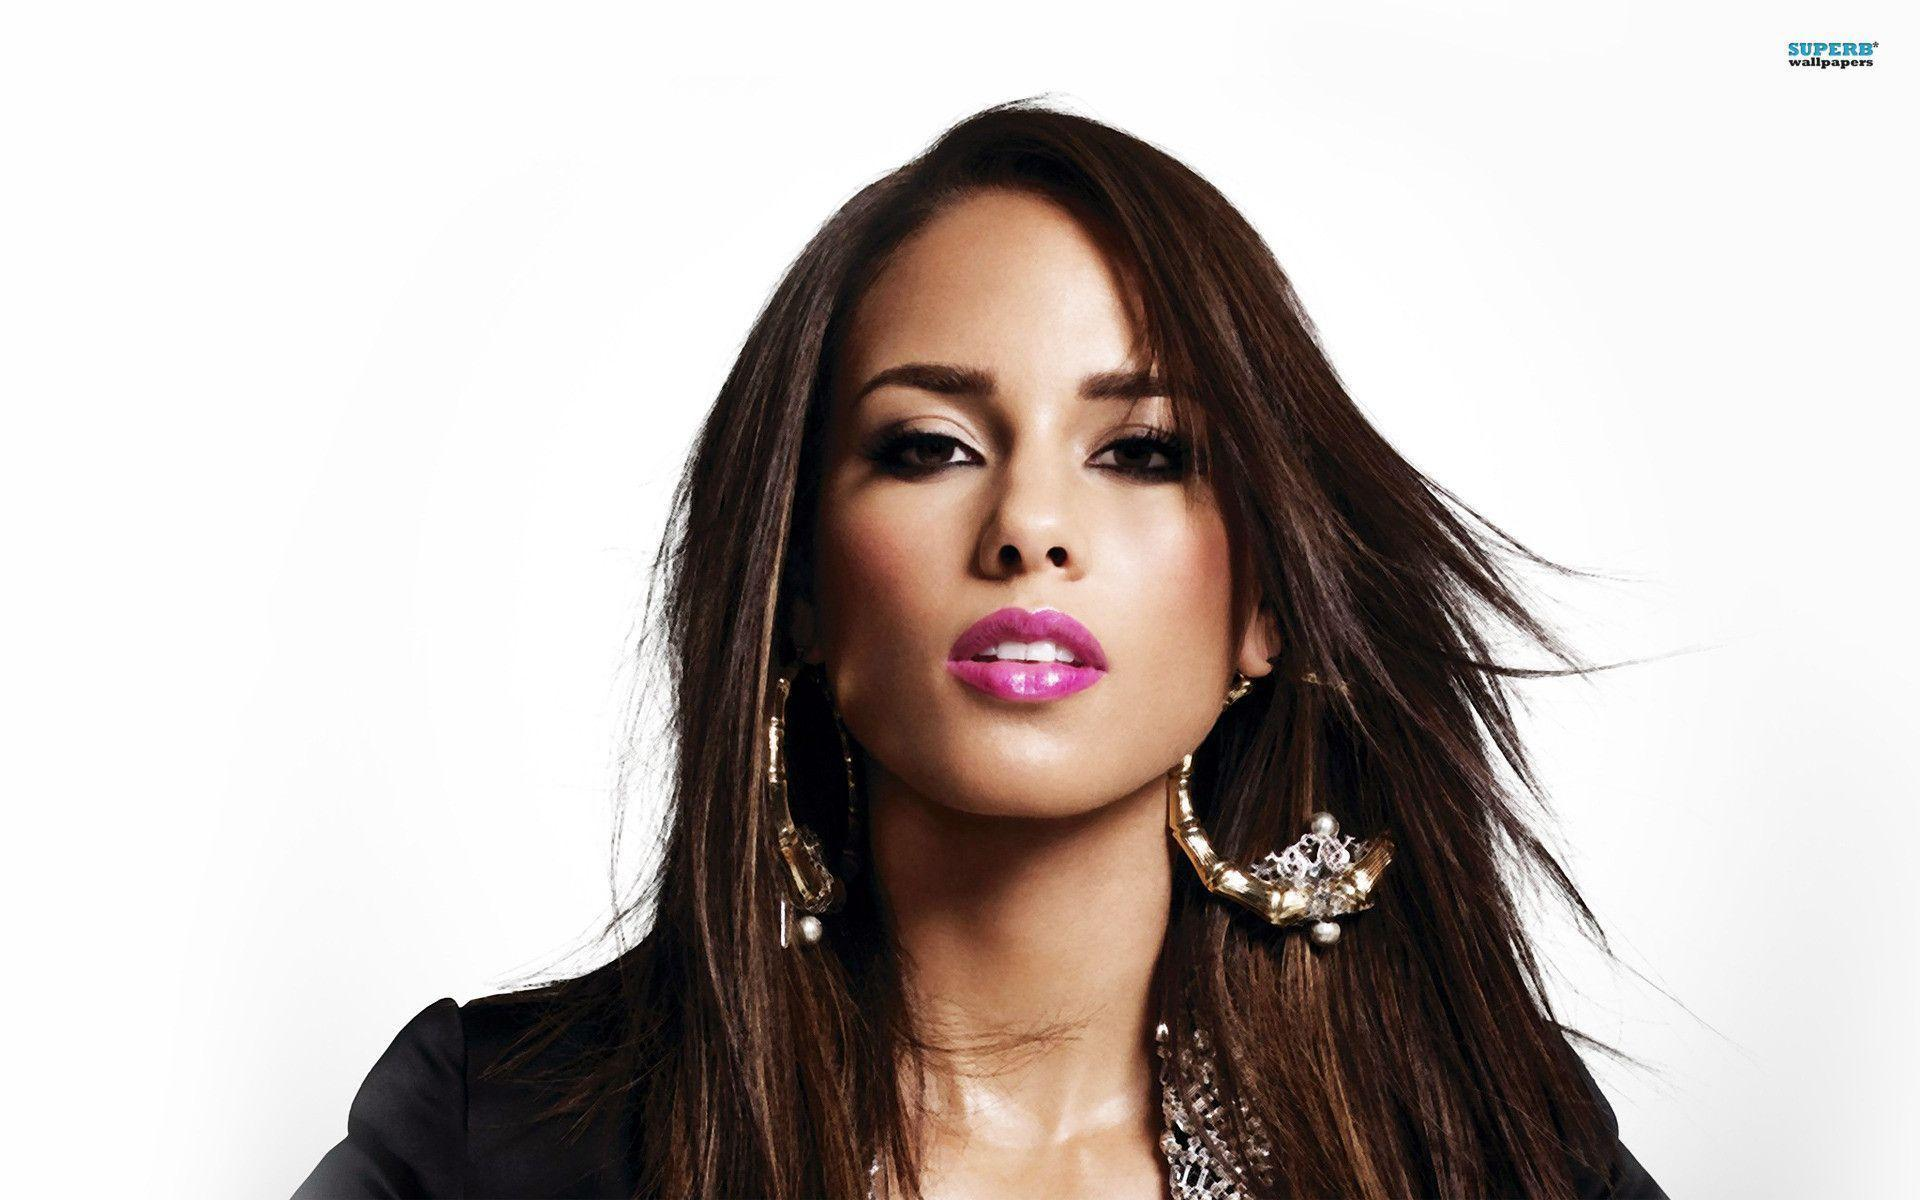 Alicia Keys wallpaper - Celebrity wallpapers - #13488